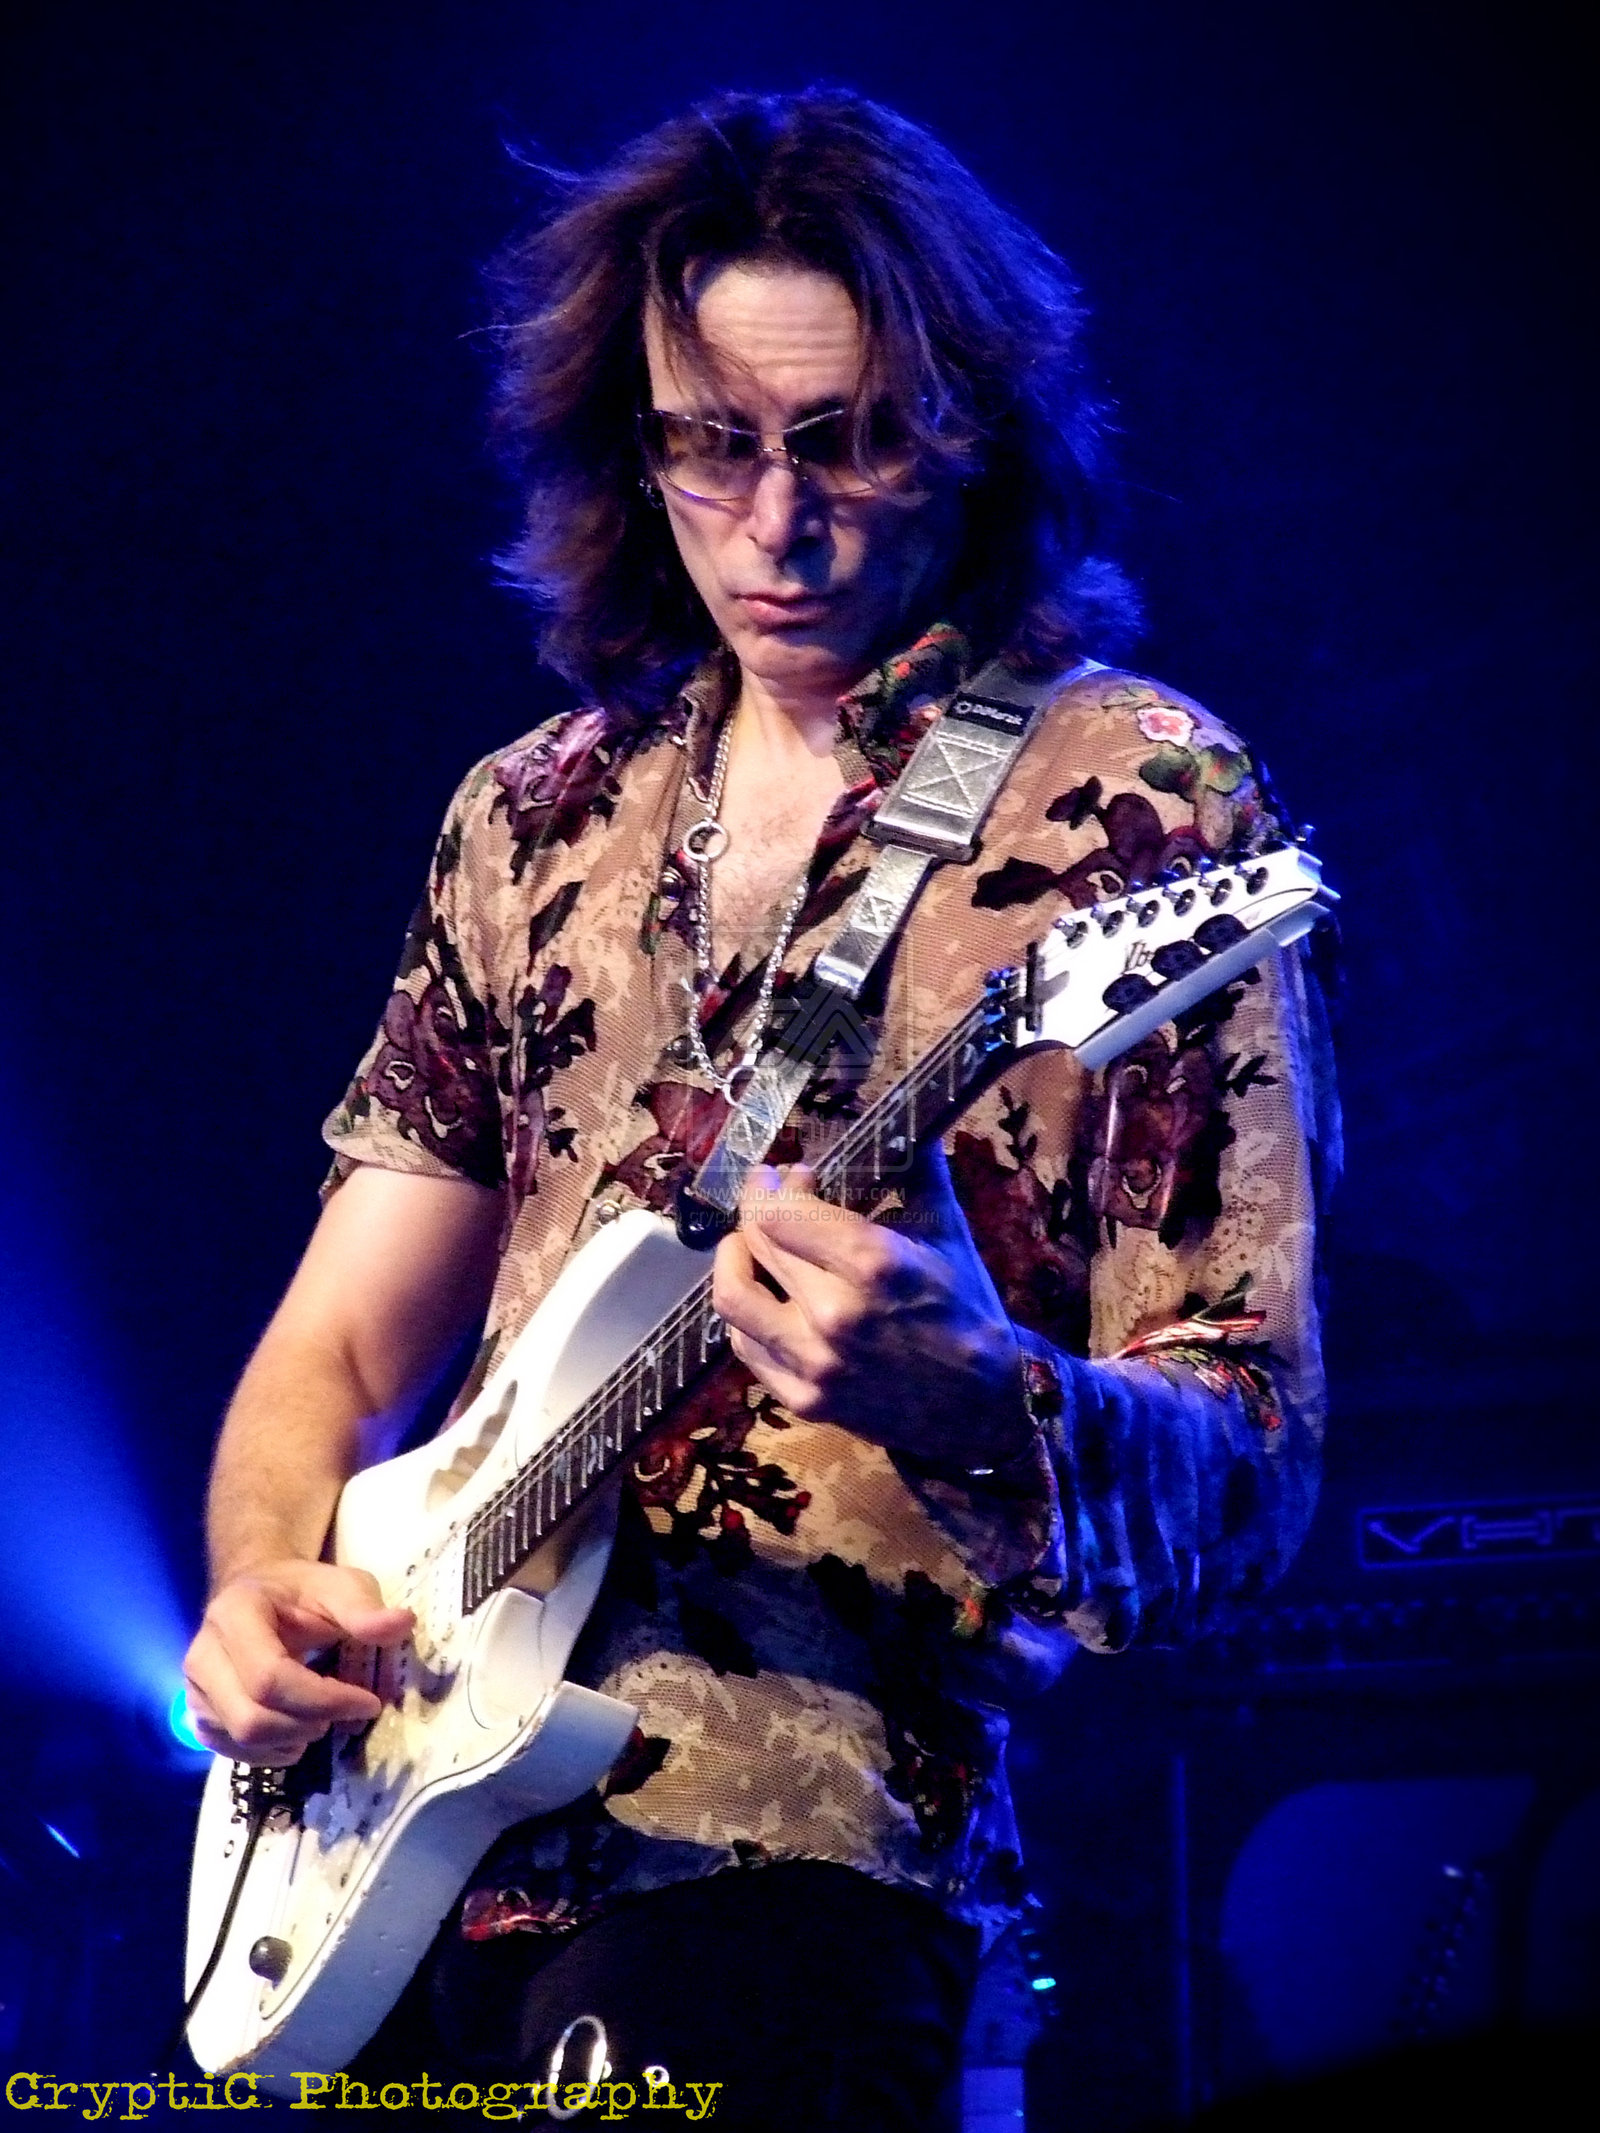 steve vai Steve vai is an american guitar player, songwriter and producer he started his career in 1980 playing with frank zappa and has since recorded and toured with alcatrazz, whitesnake, david lee roth and public image ltd.